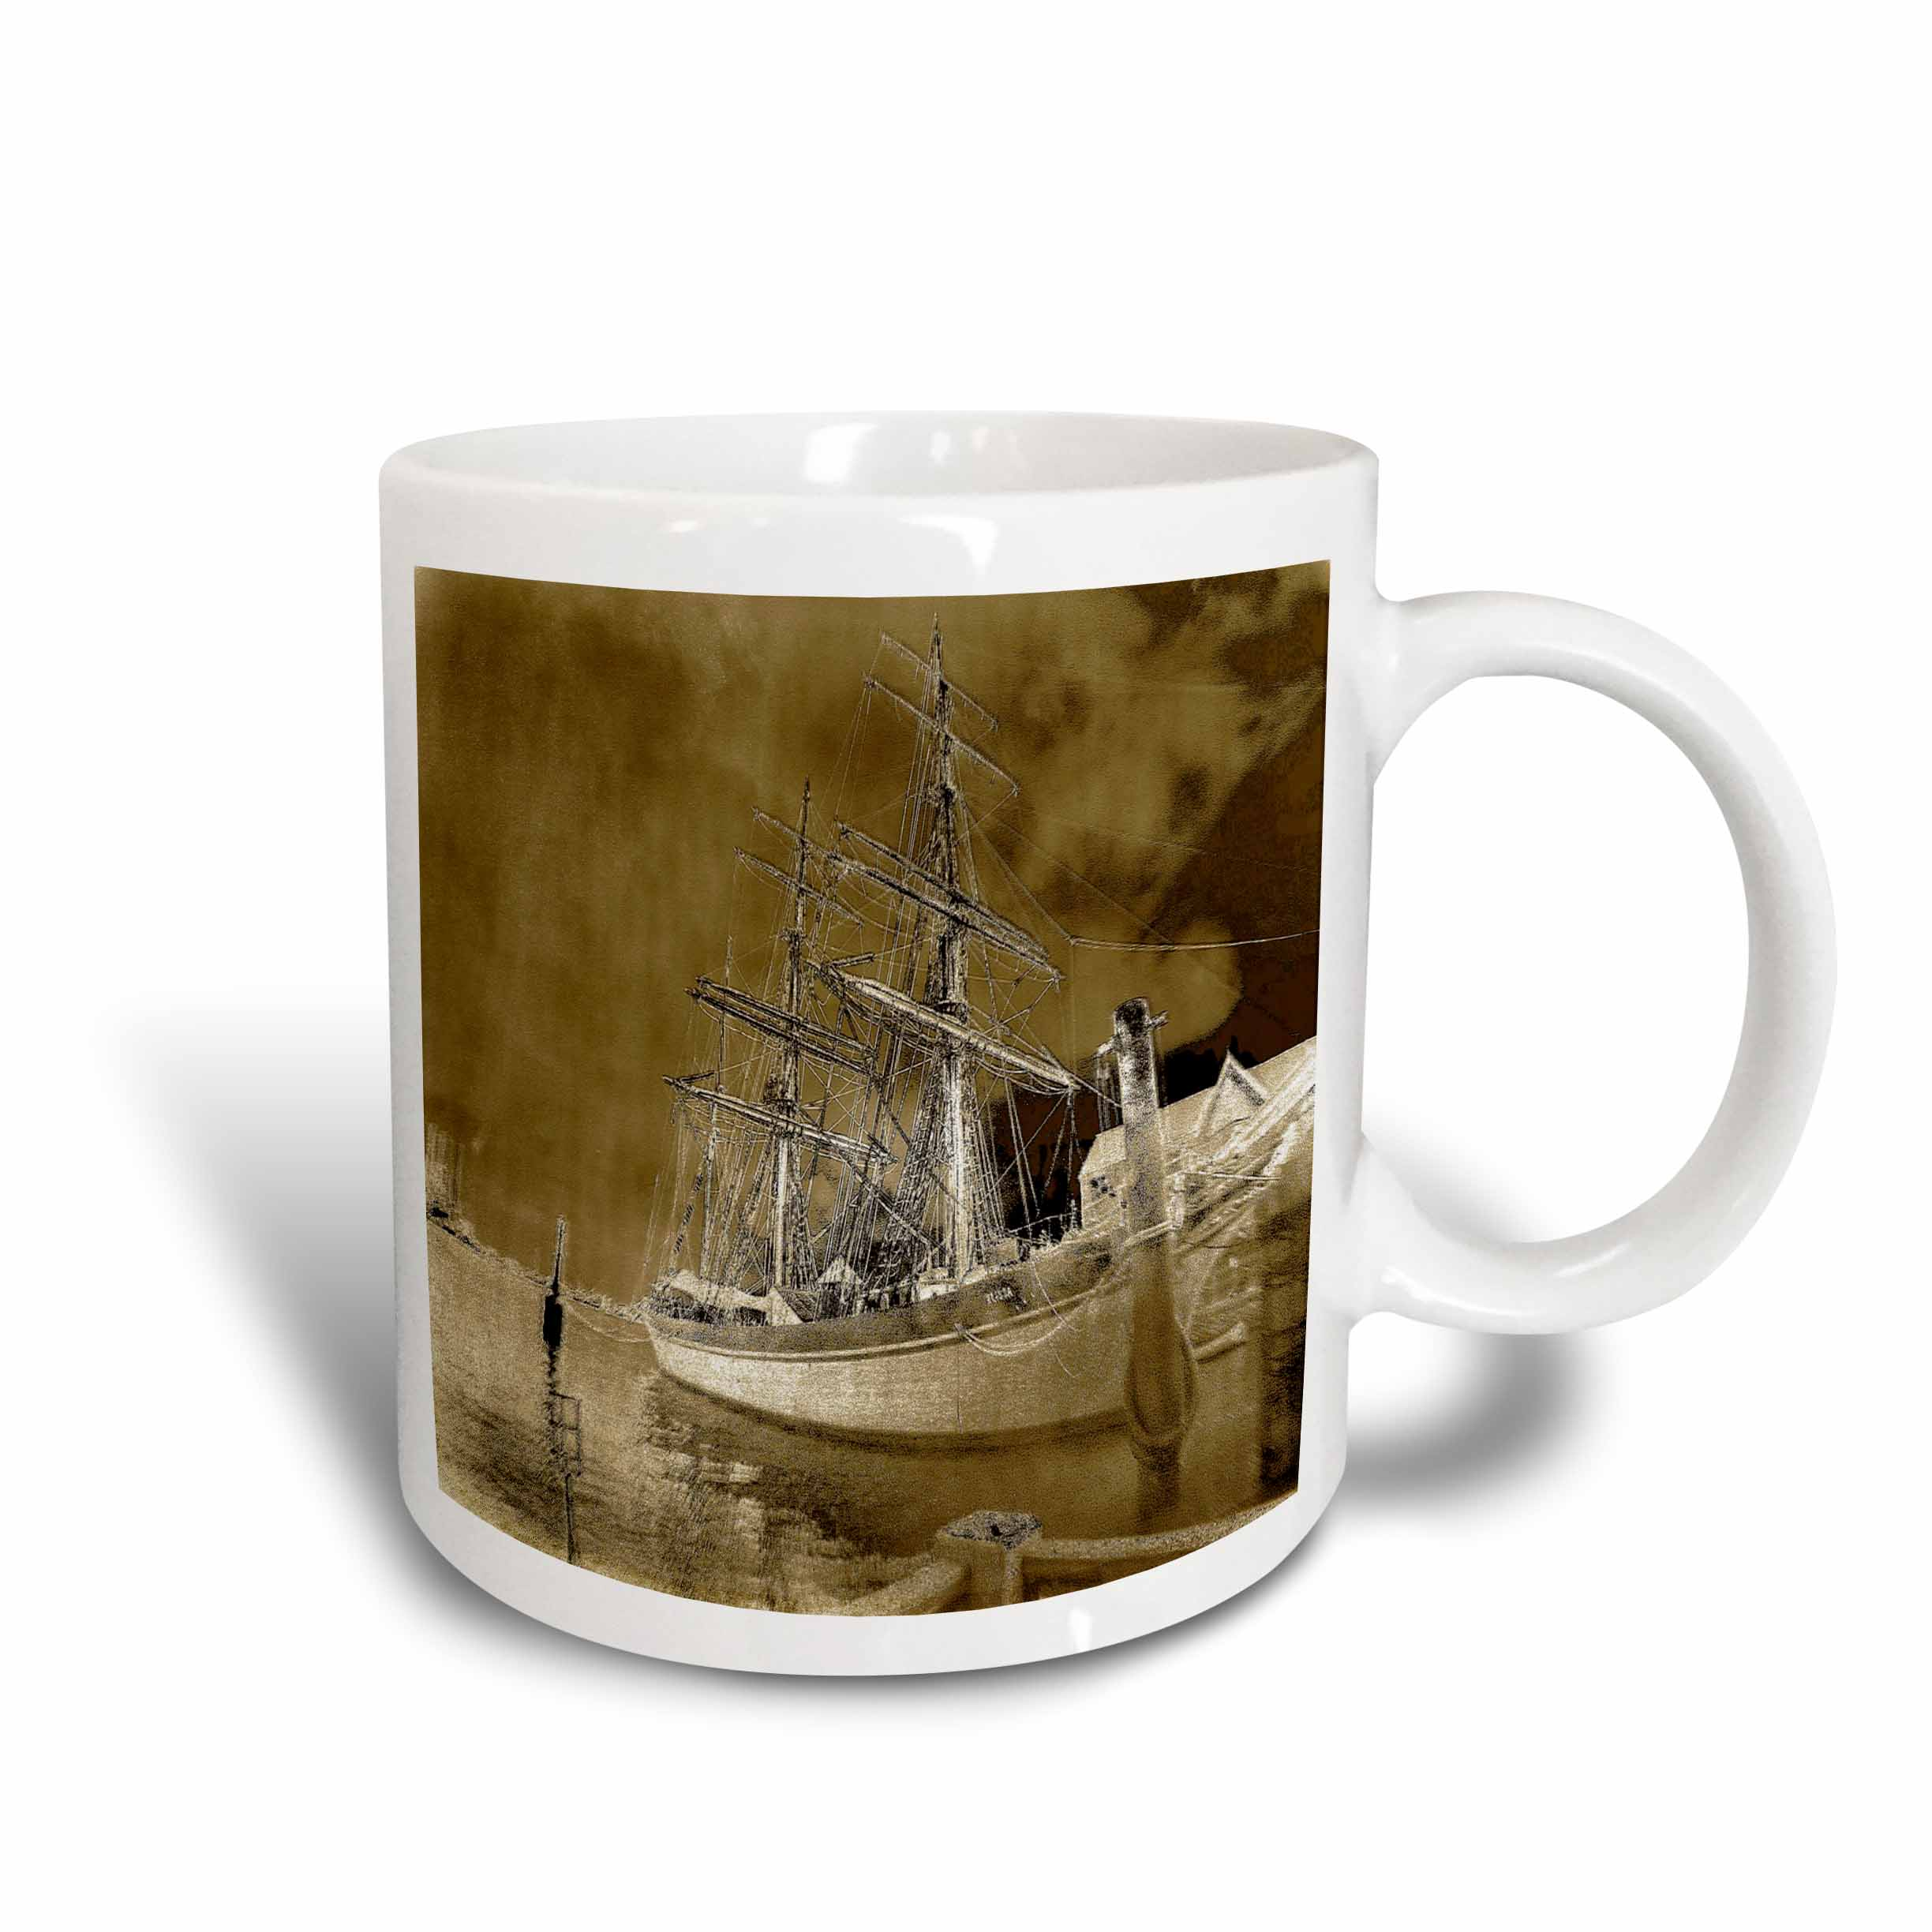 3dRose Galvestons Elissa Tall Ship, Ceramic Mug, 15-ounce by 3dRose